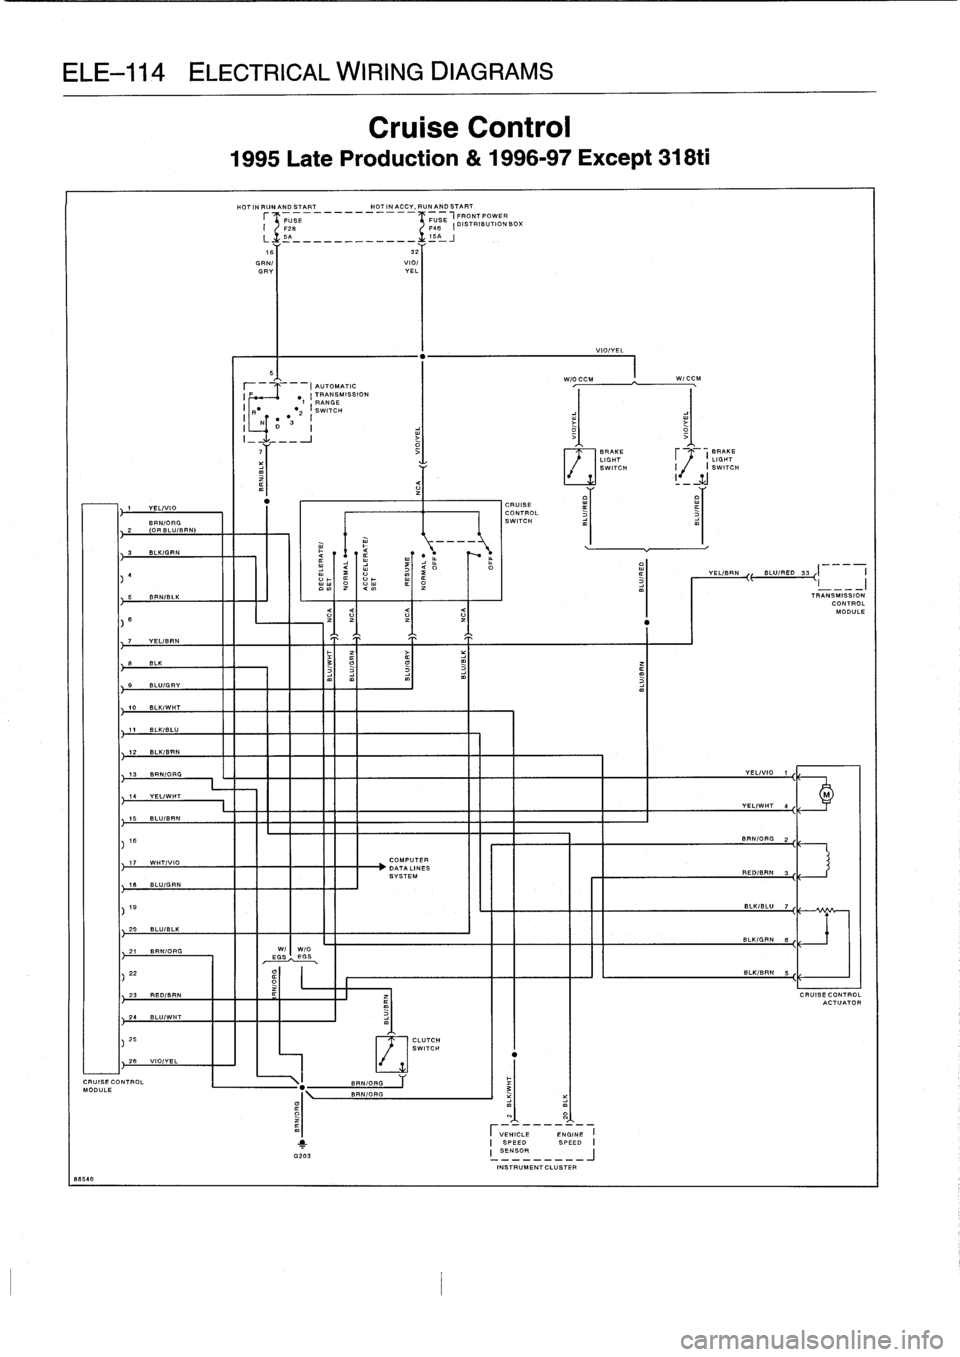 Bmw M50b25 Wiring Diagram : Awesome m wiring diagram contemporary best image wire